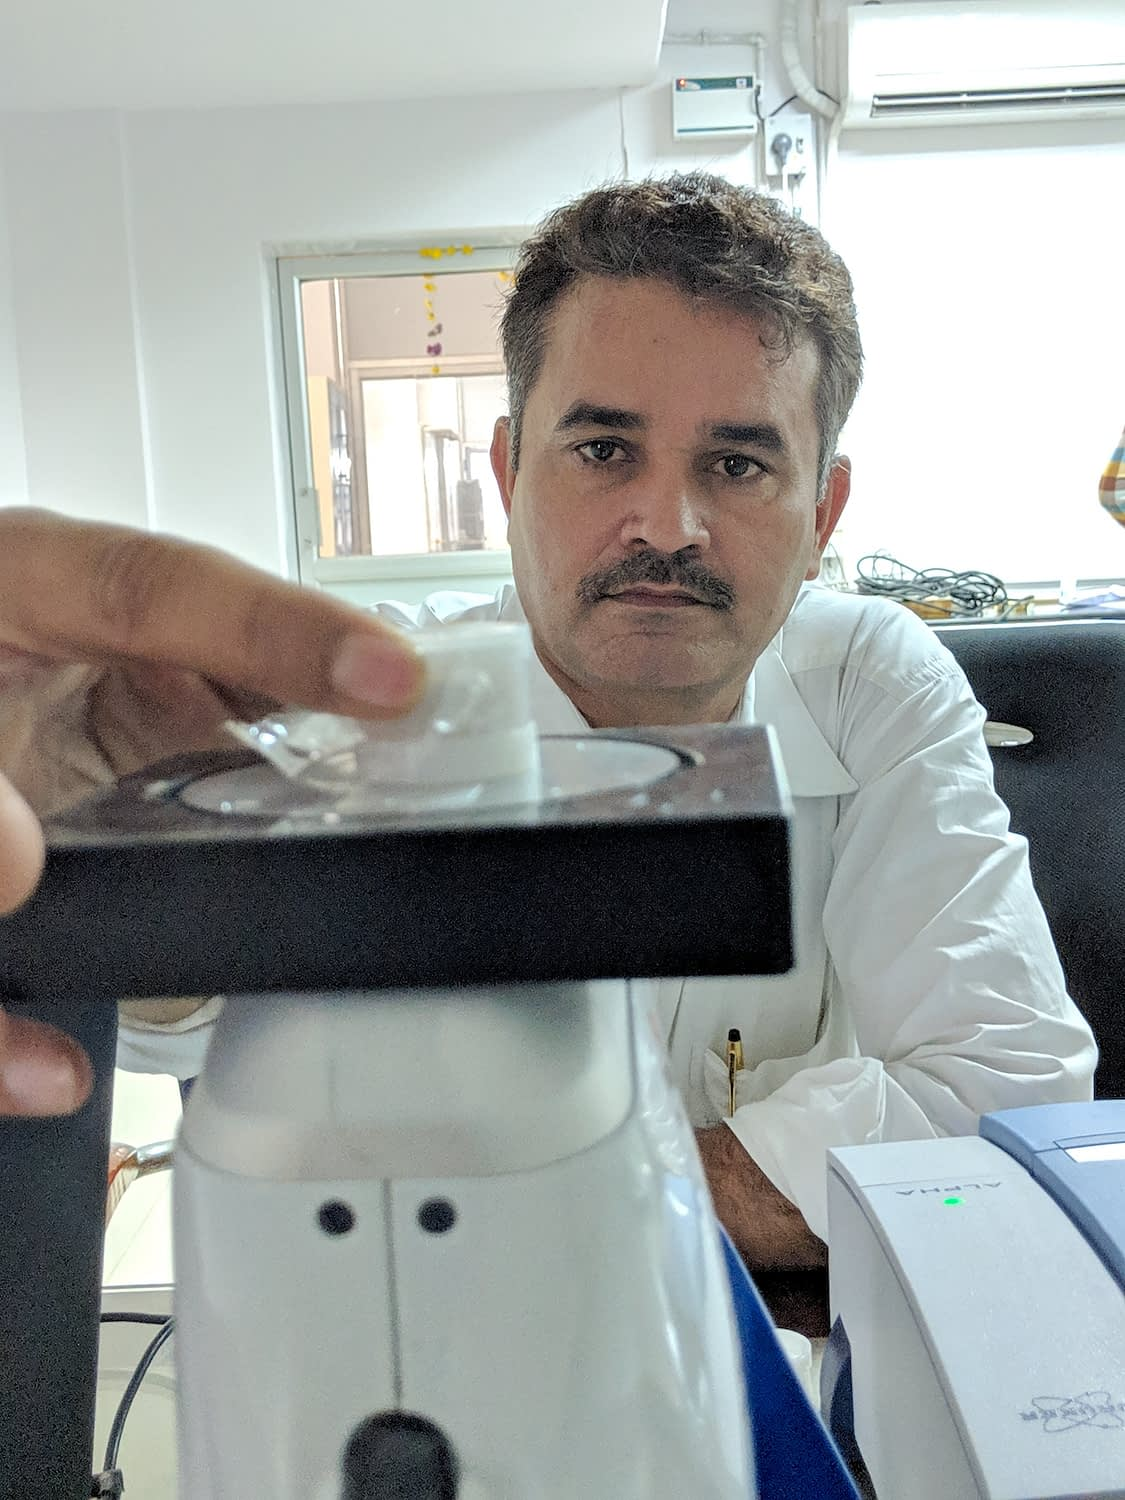 CIMMYT scientist Shishpal Poonia places a soil sample on the Tracer instrument for soil spectroscopy analysis.